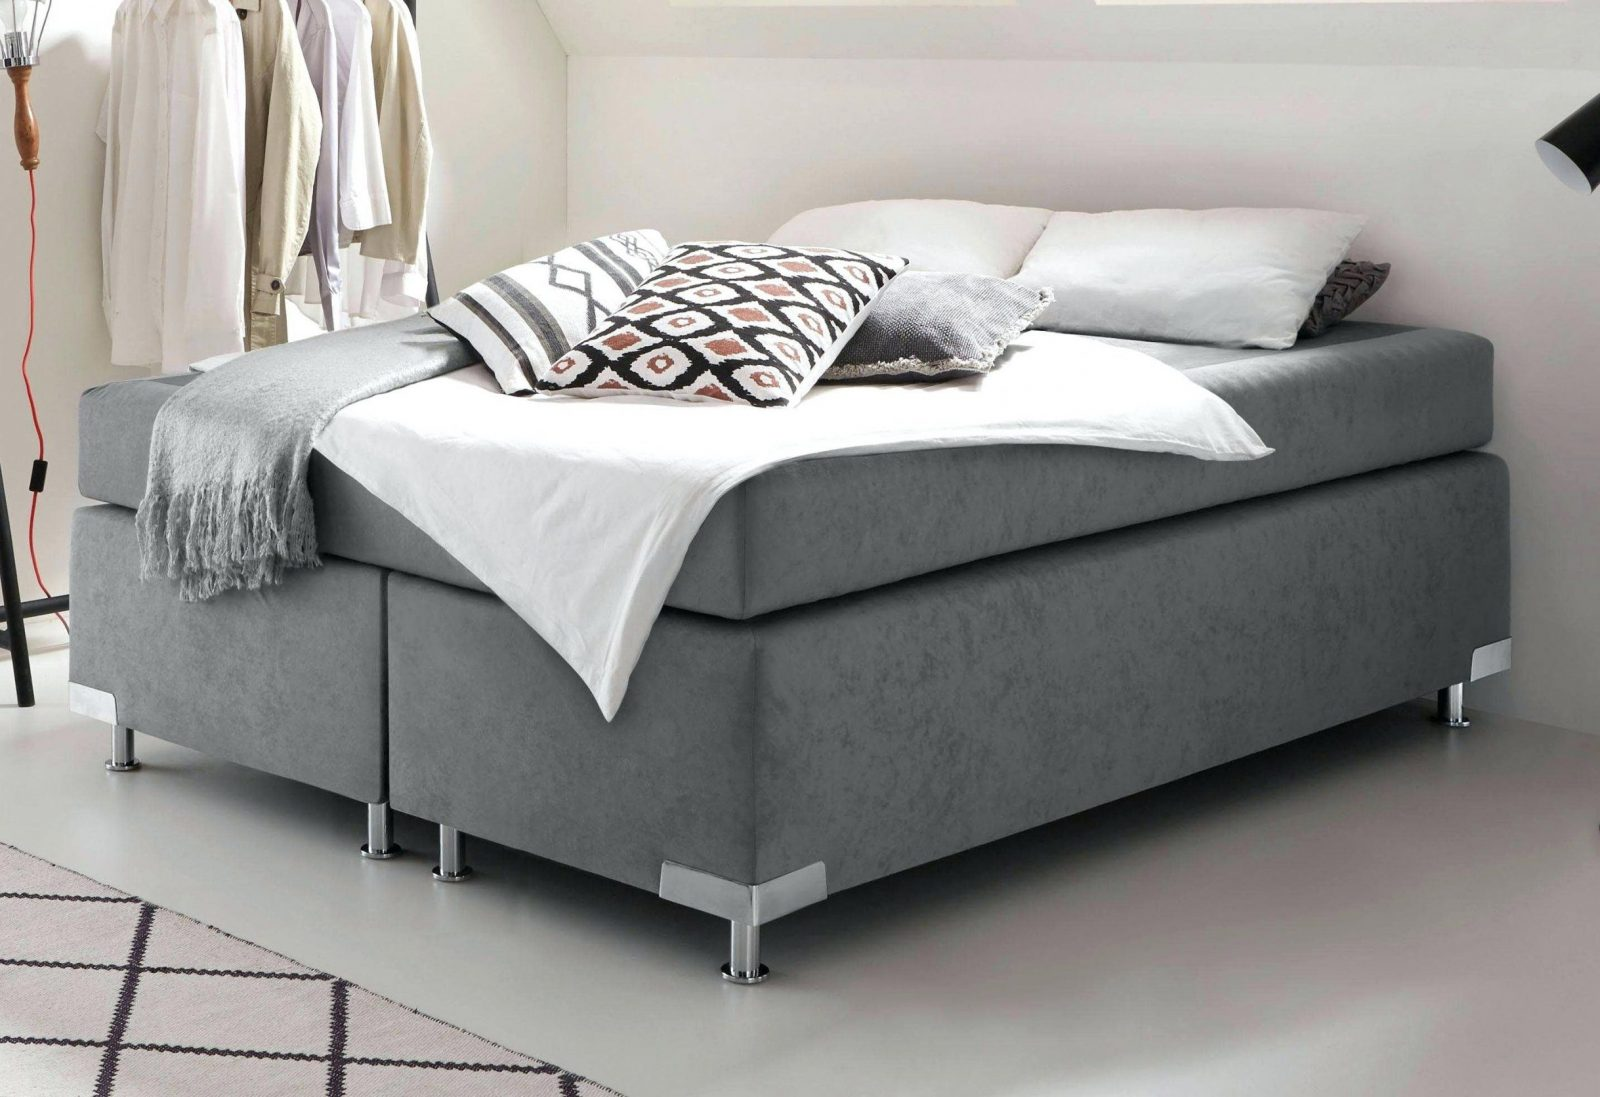 boxspringbett 140x200 cm ohne kopfteil g nstig sydney von. Black Bedroom Furniture Sets. Home Design Ideas